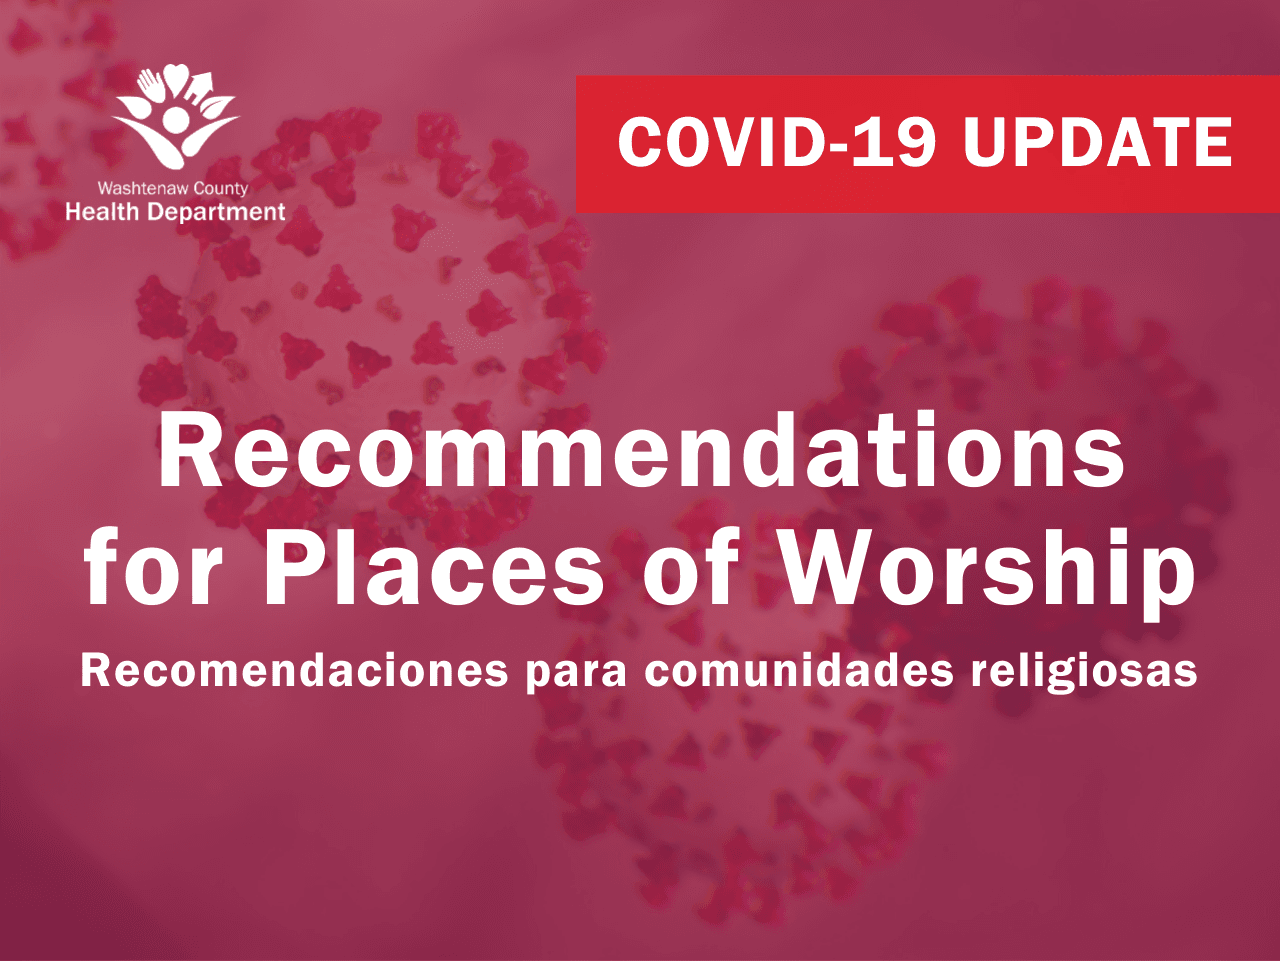 Recommendations for Places of Worship